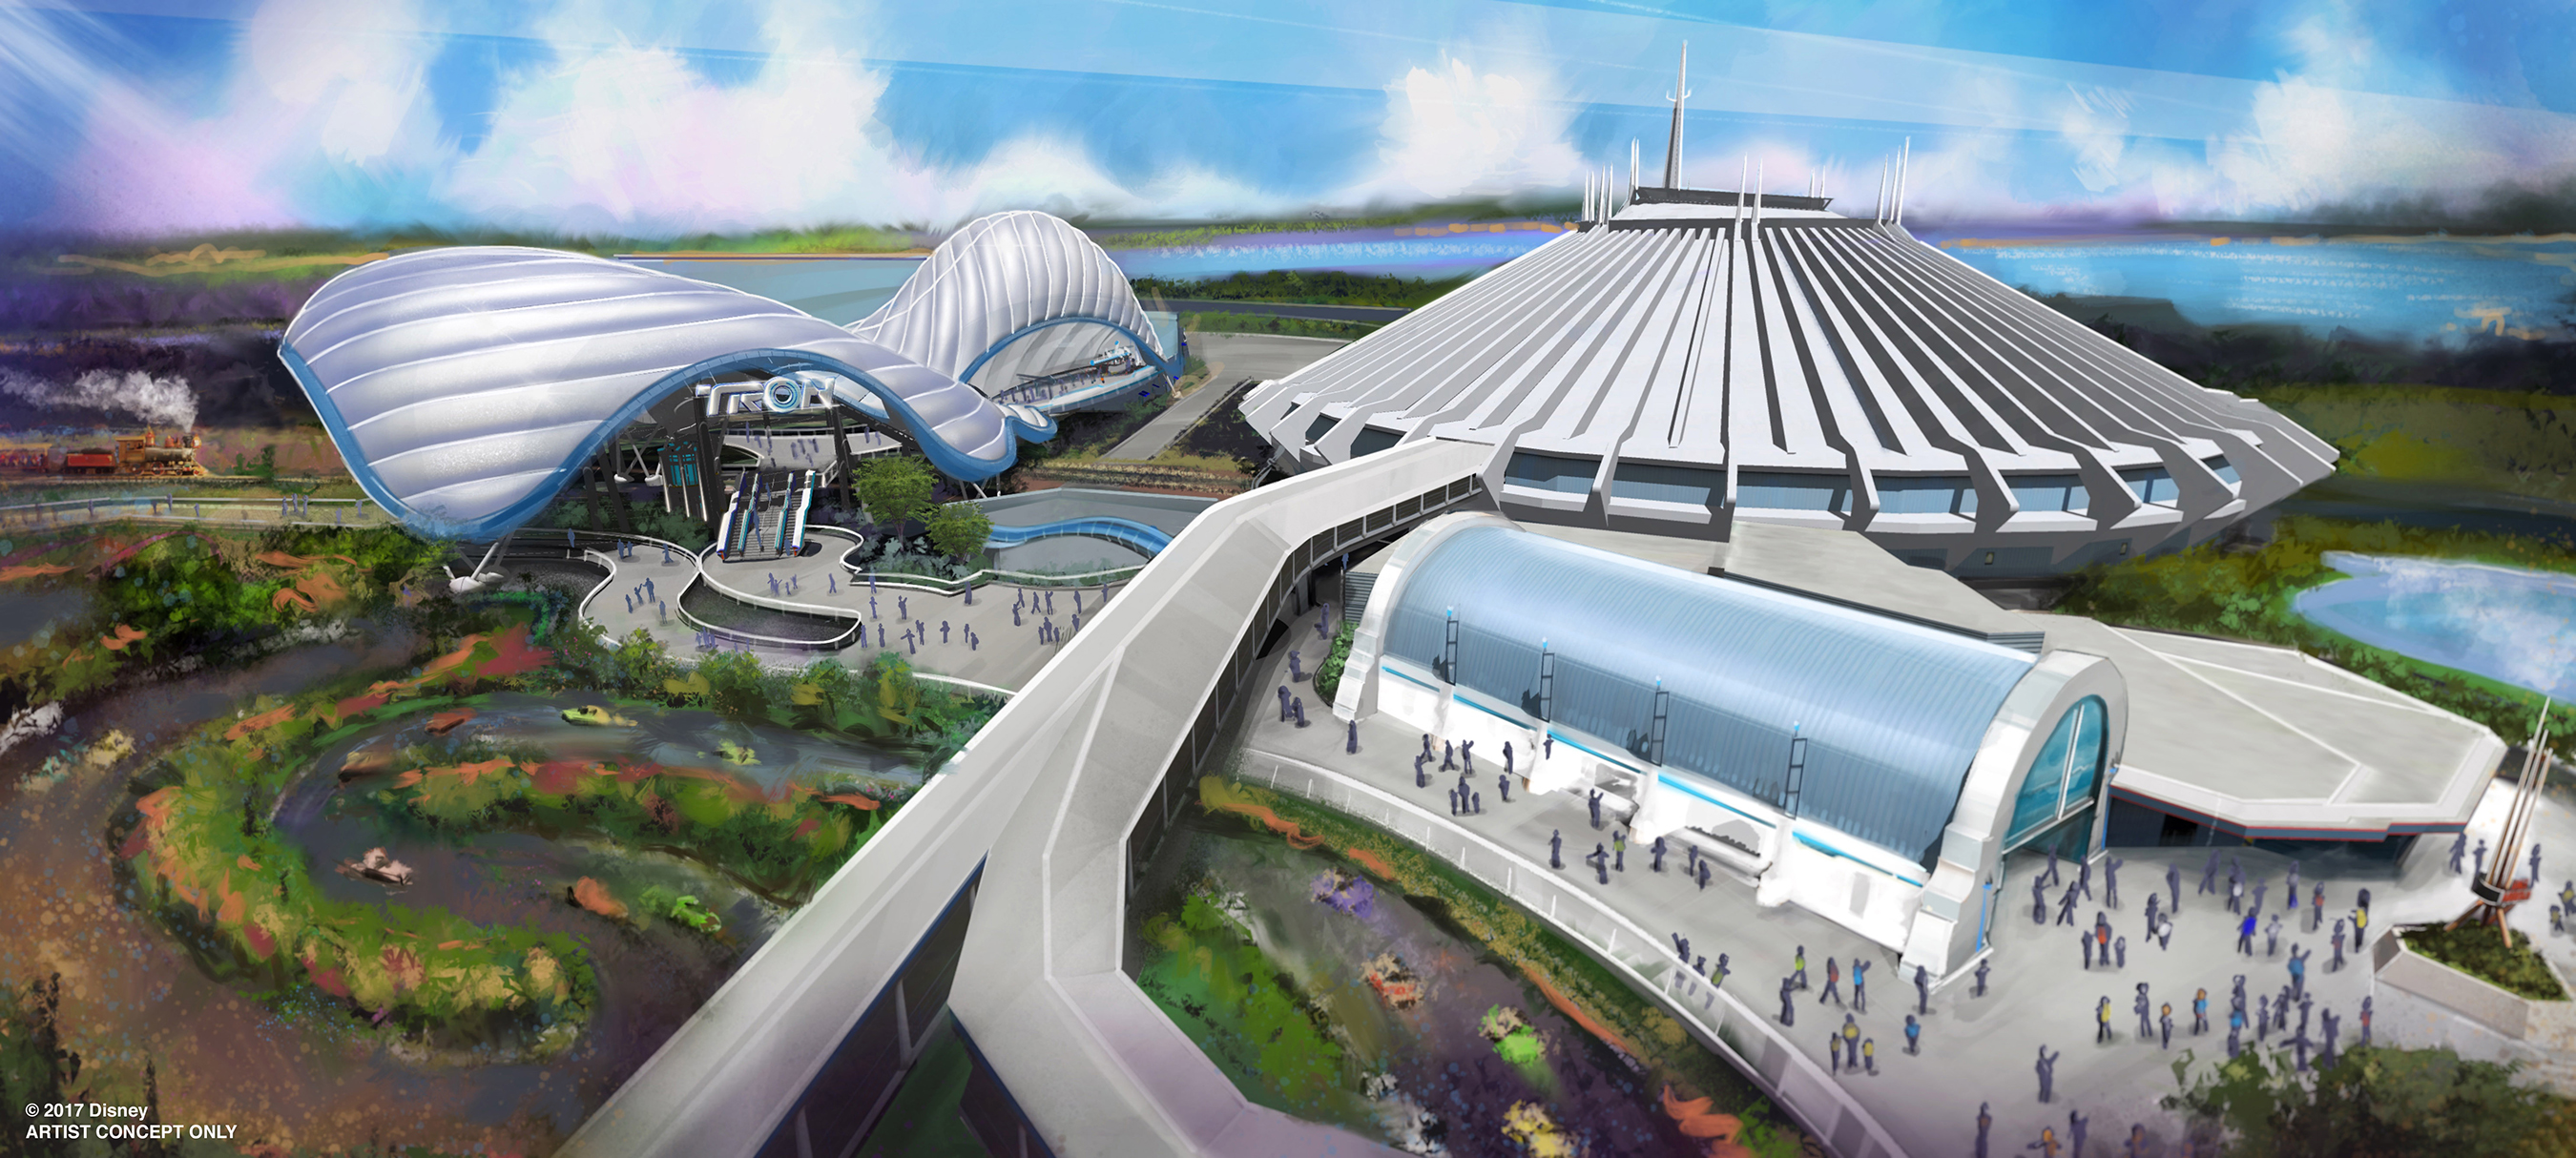 Walt Disney Parks & Resorts Chairman Bob Chapek announced during D23 Expo that the most popular attraction at Shanghai Disneyland is coming to Walt Disney World Resort. A thrilling, Tron-themed attraction will be added in a new area near Space Mountain at Magic Kingdom Park.